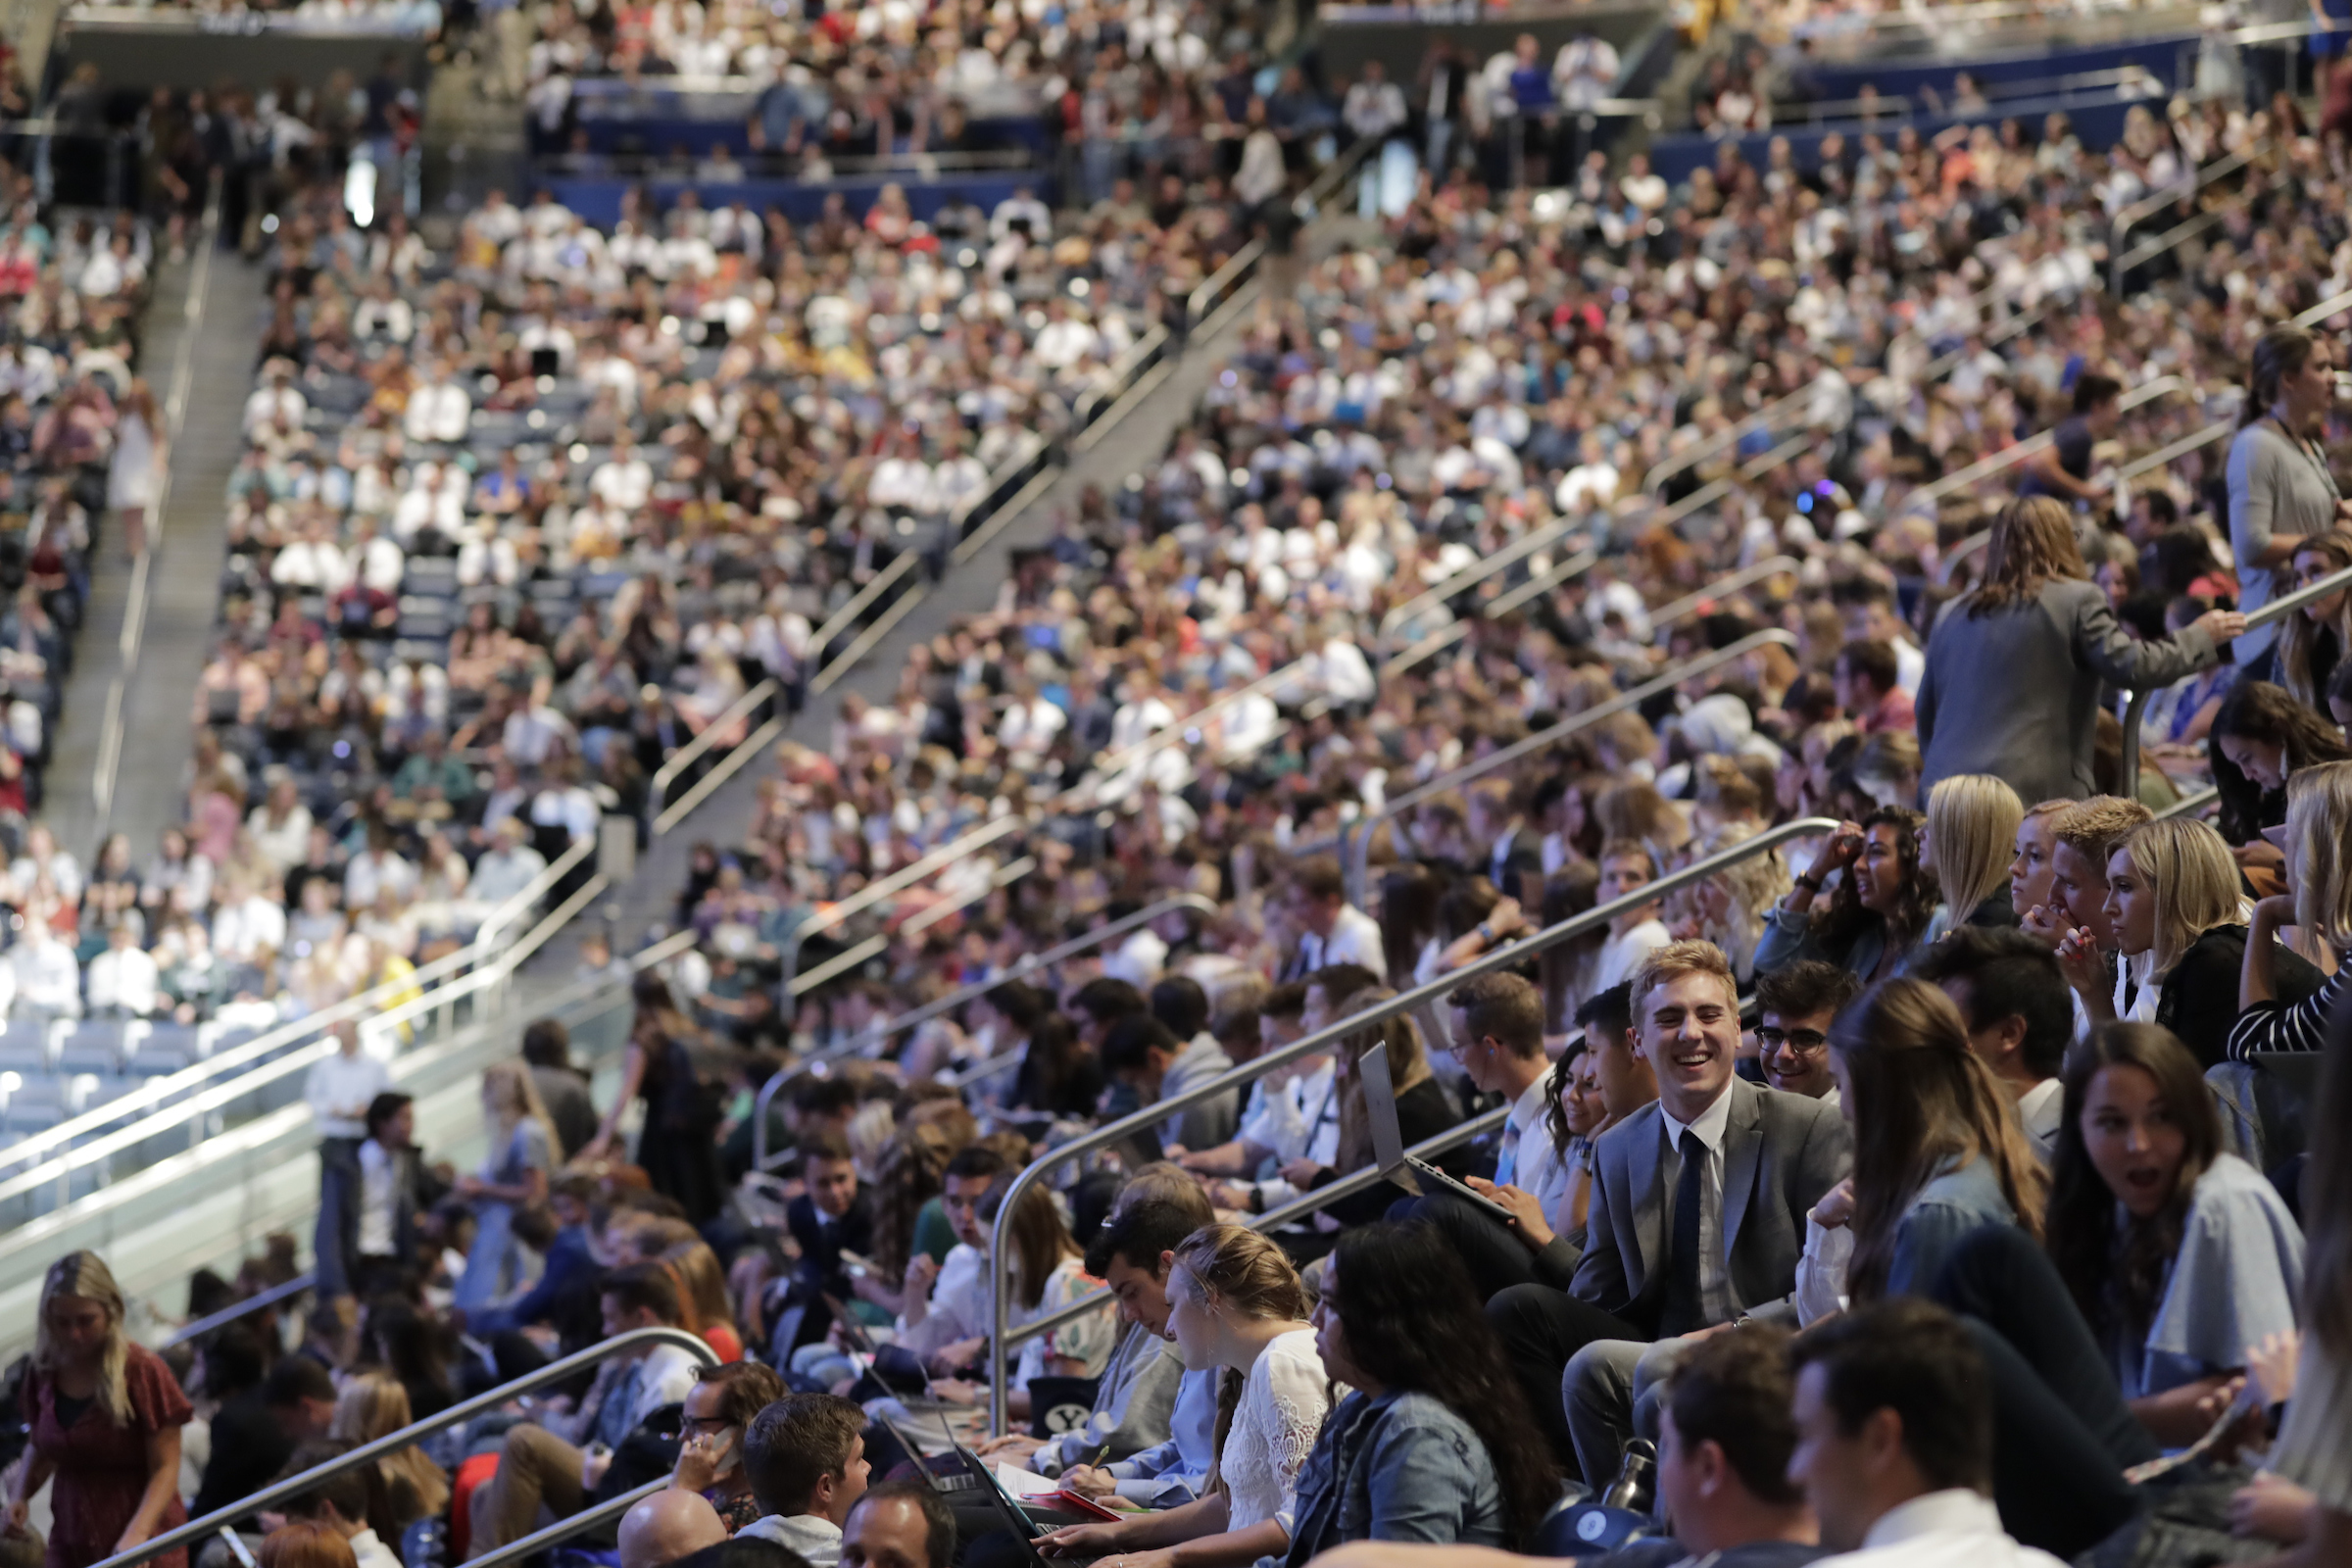 Students take their seats in the Marriott Center on BYU campus in preparation for a devotional by President Russell M. Nelson on Tuesday, Sept. 17, 2019.